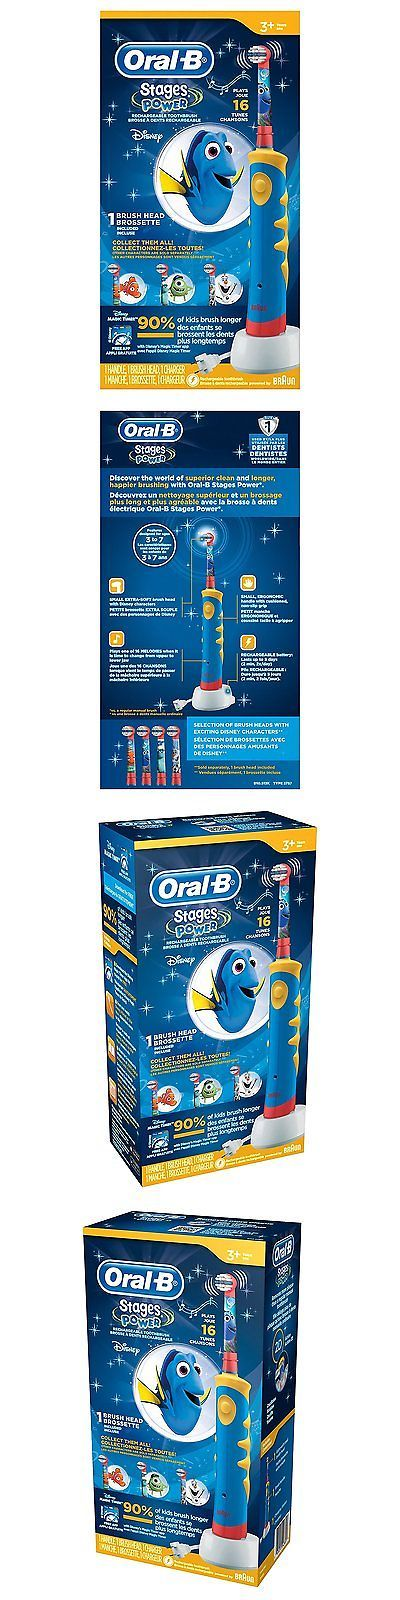 Childrens Oral Care: Oral B Pro-Health Stages Oral-B Power Brush - Finding Dory Toothbrush For Kids BUY IT NOW ONLY: $49.09